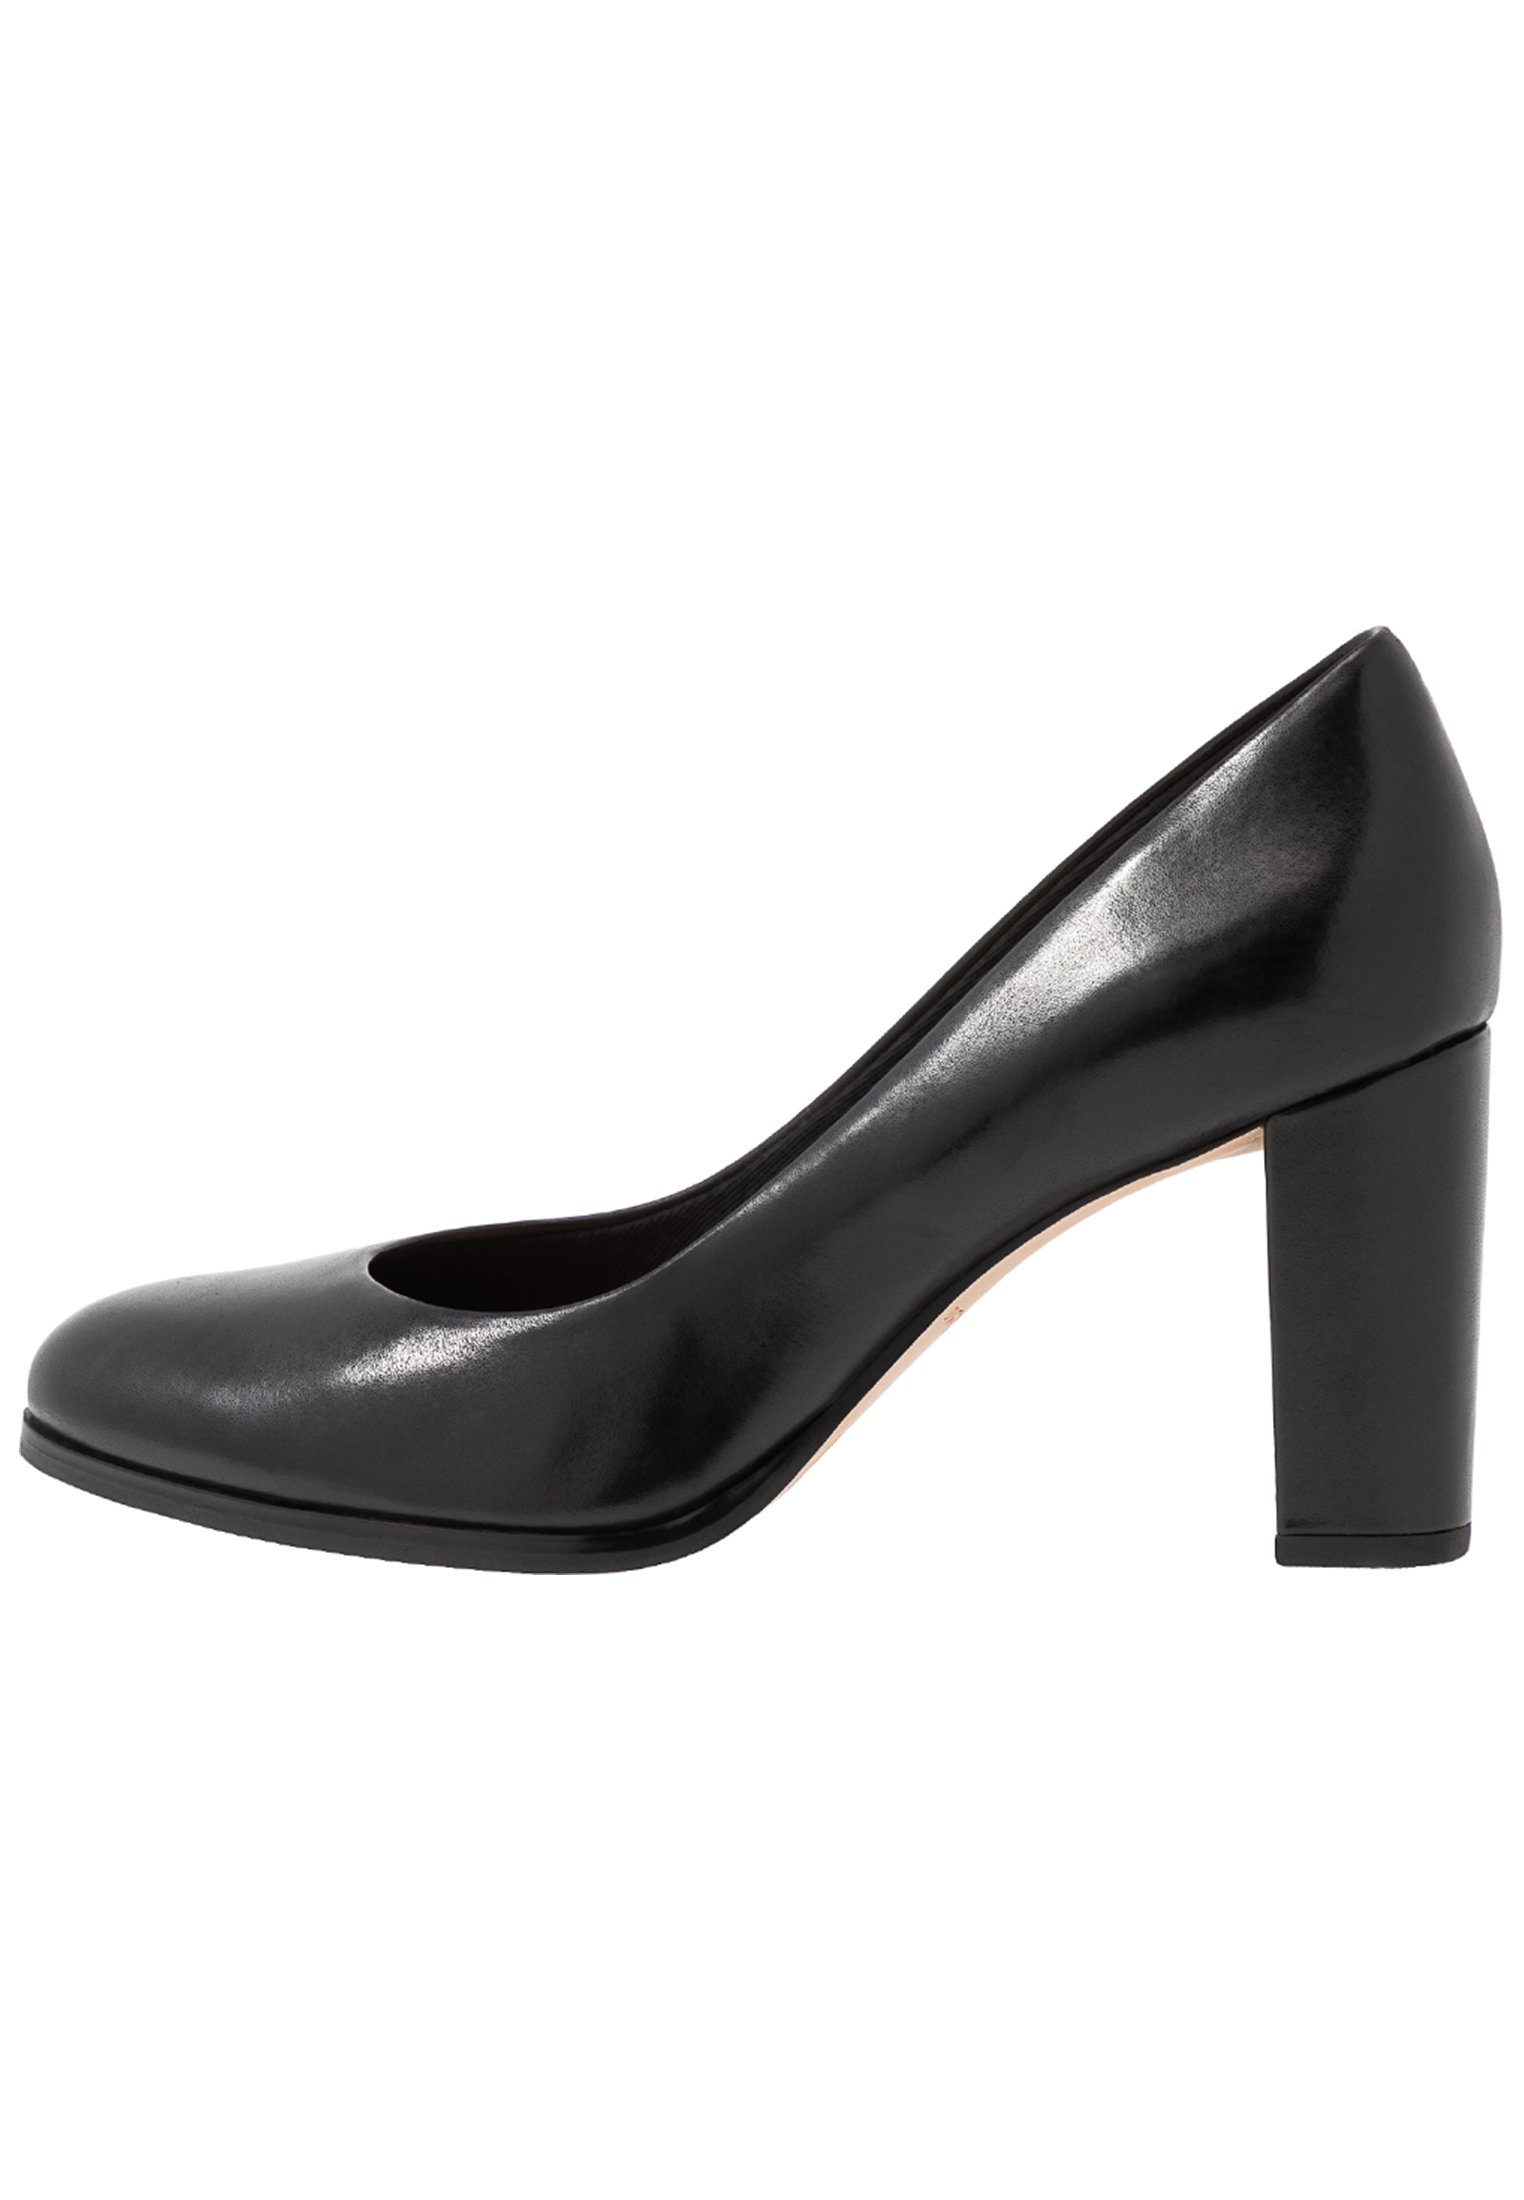 KAYLIN CARA Pumps black